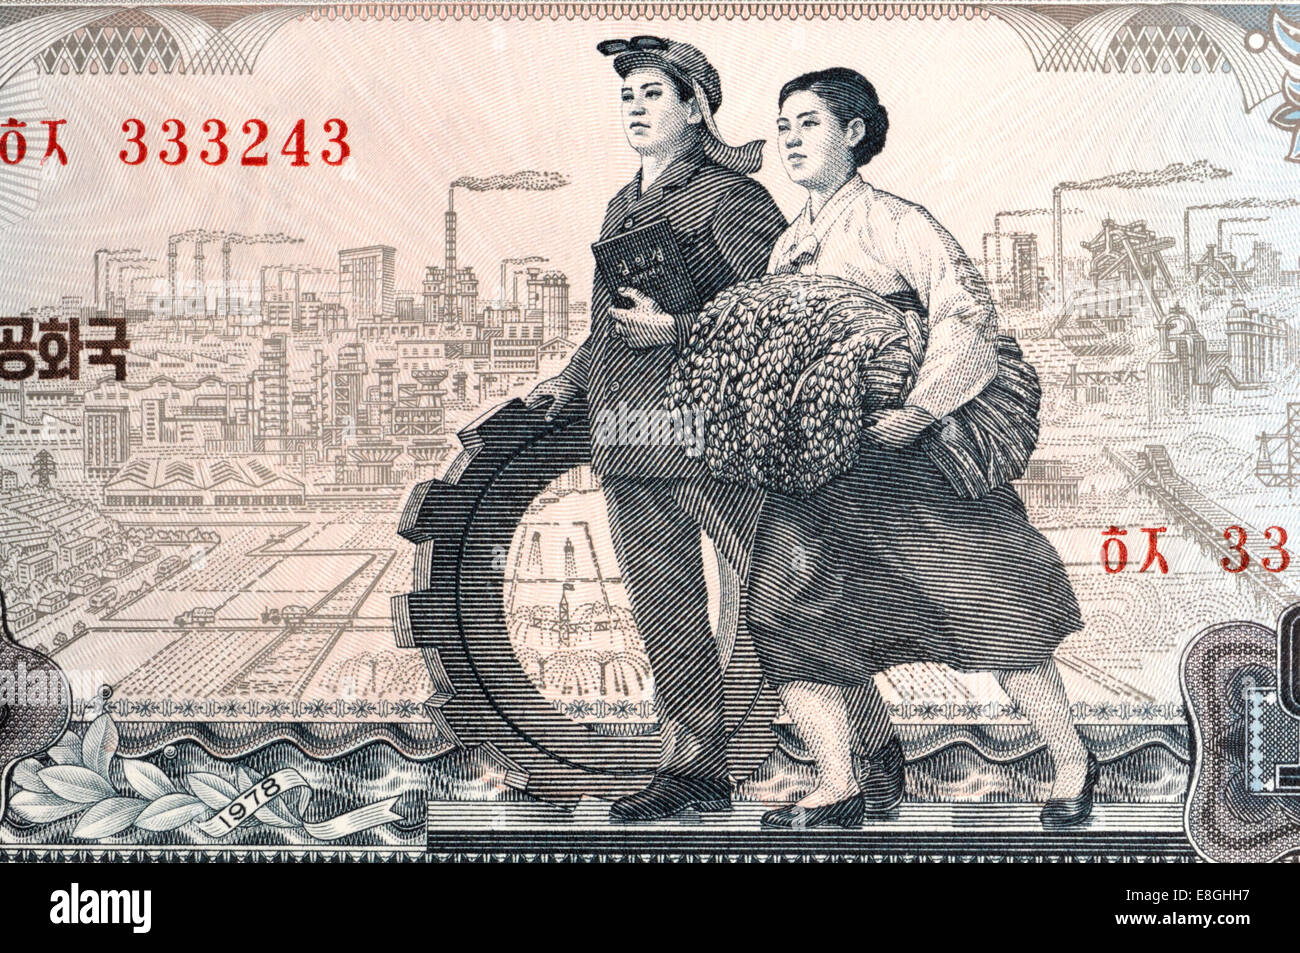 Detail of North Korean 5 Won banknote (1978) showing an engineer and a farm worker - Stock Image